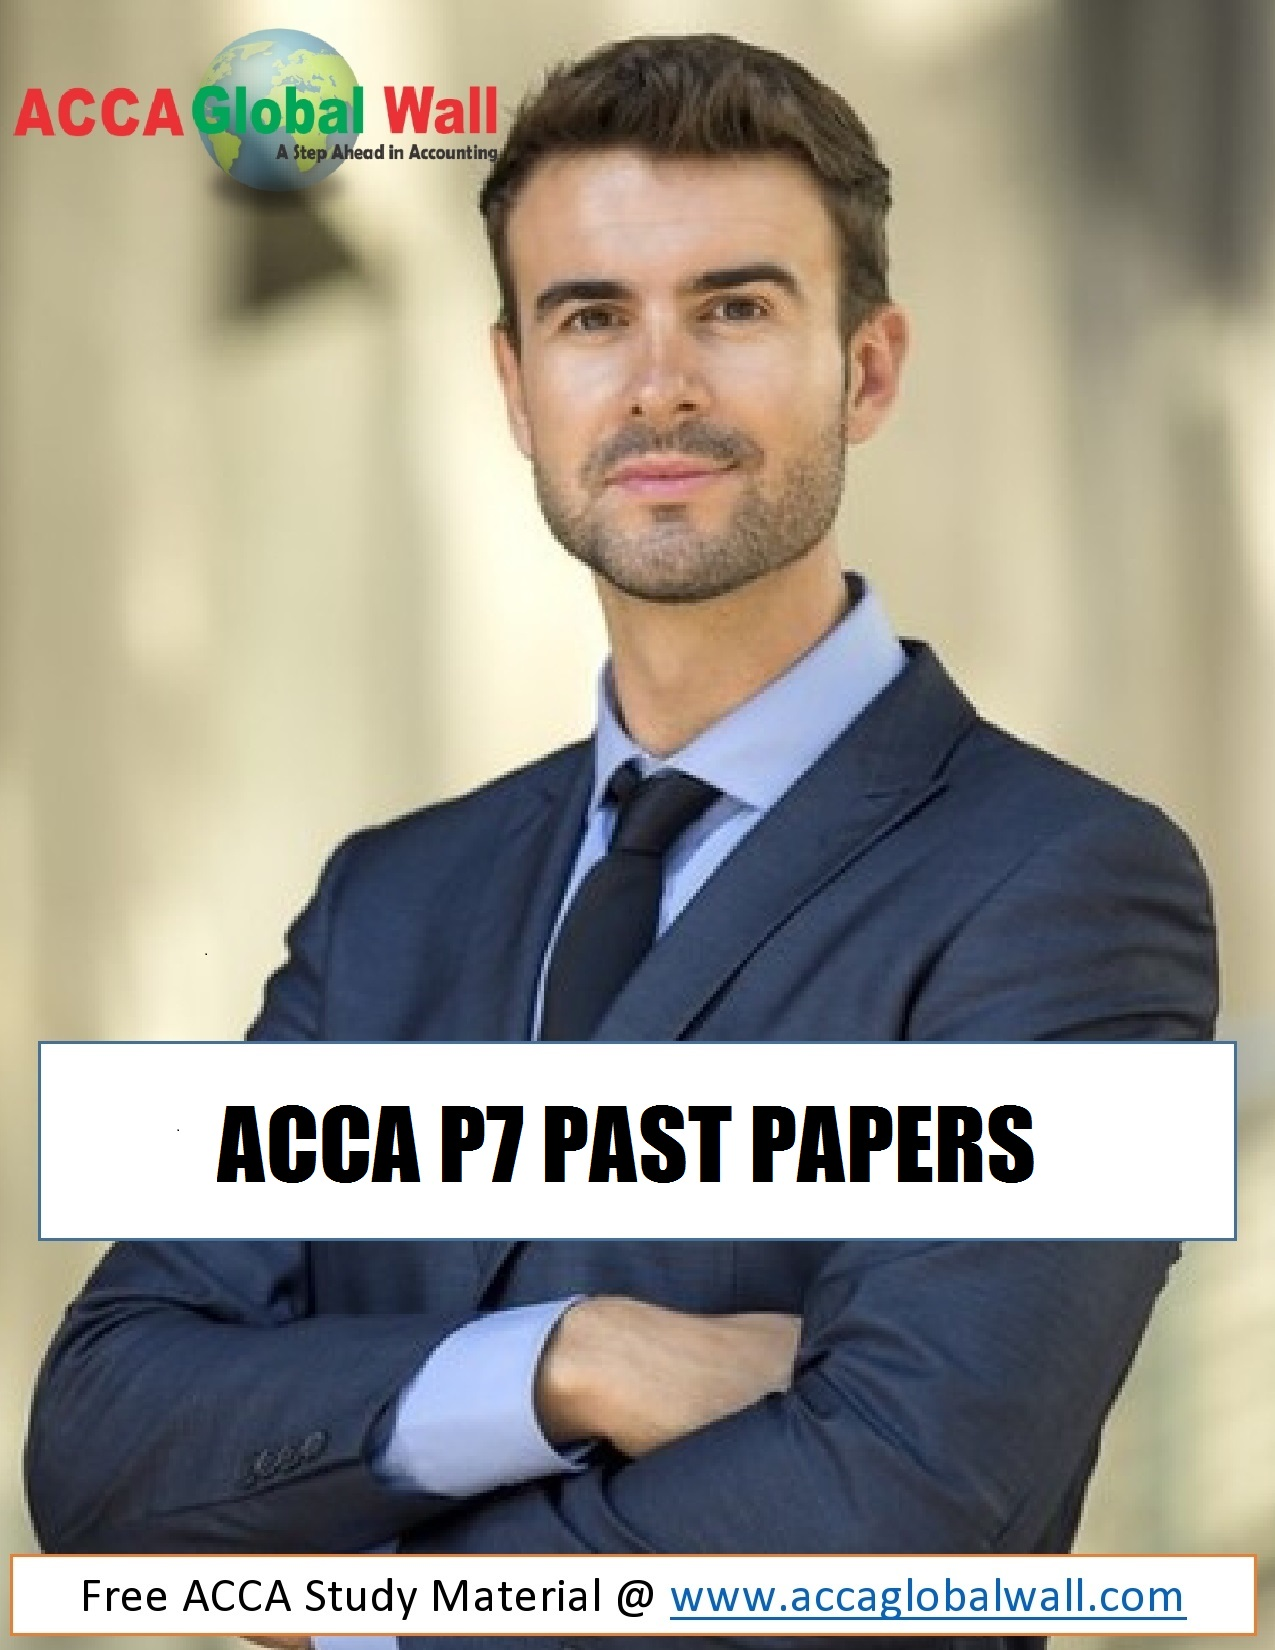 ACCA P7 PAST PAPERS - ACCA Study Material